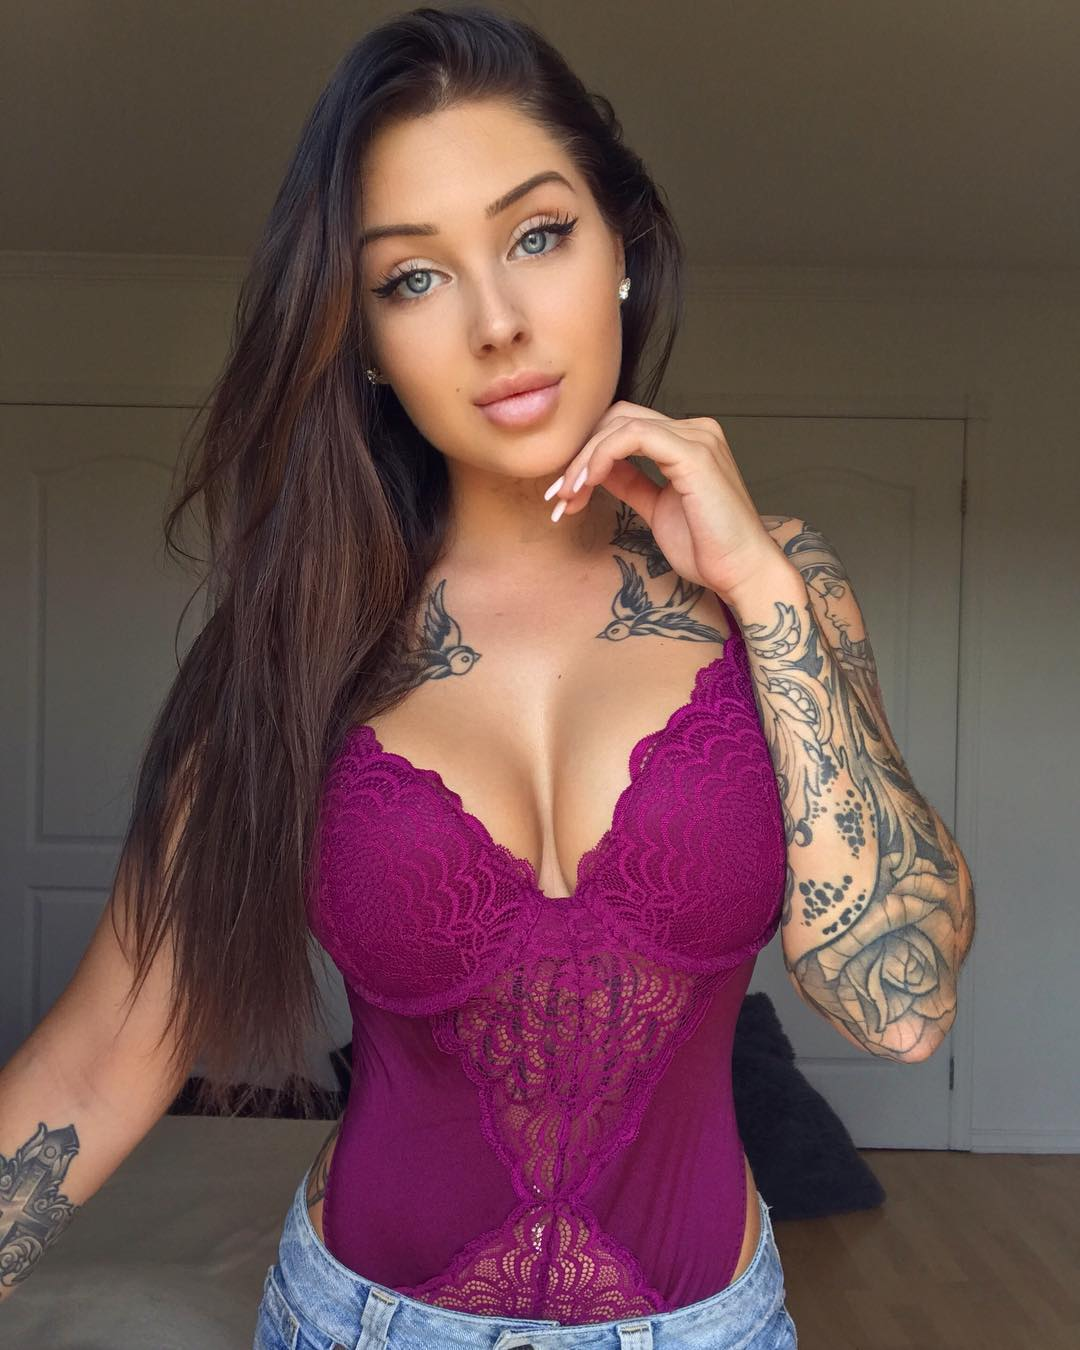 sexy inked brunette Valerie Cossette taking a selfie in purple lingerie